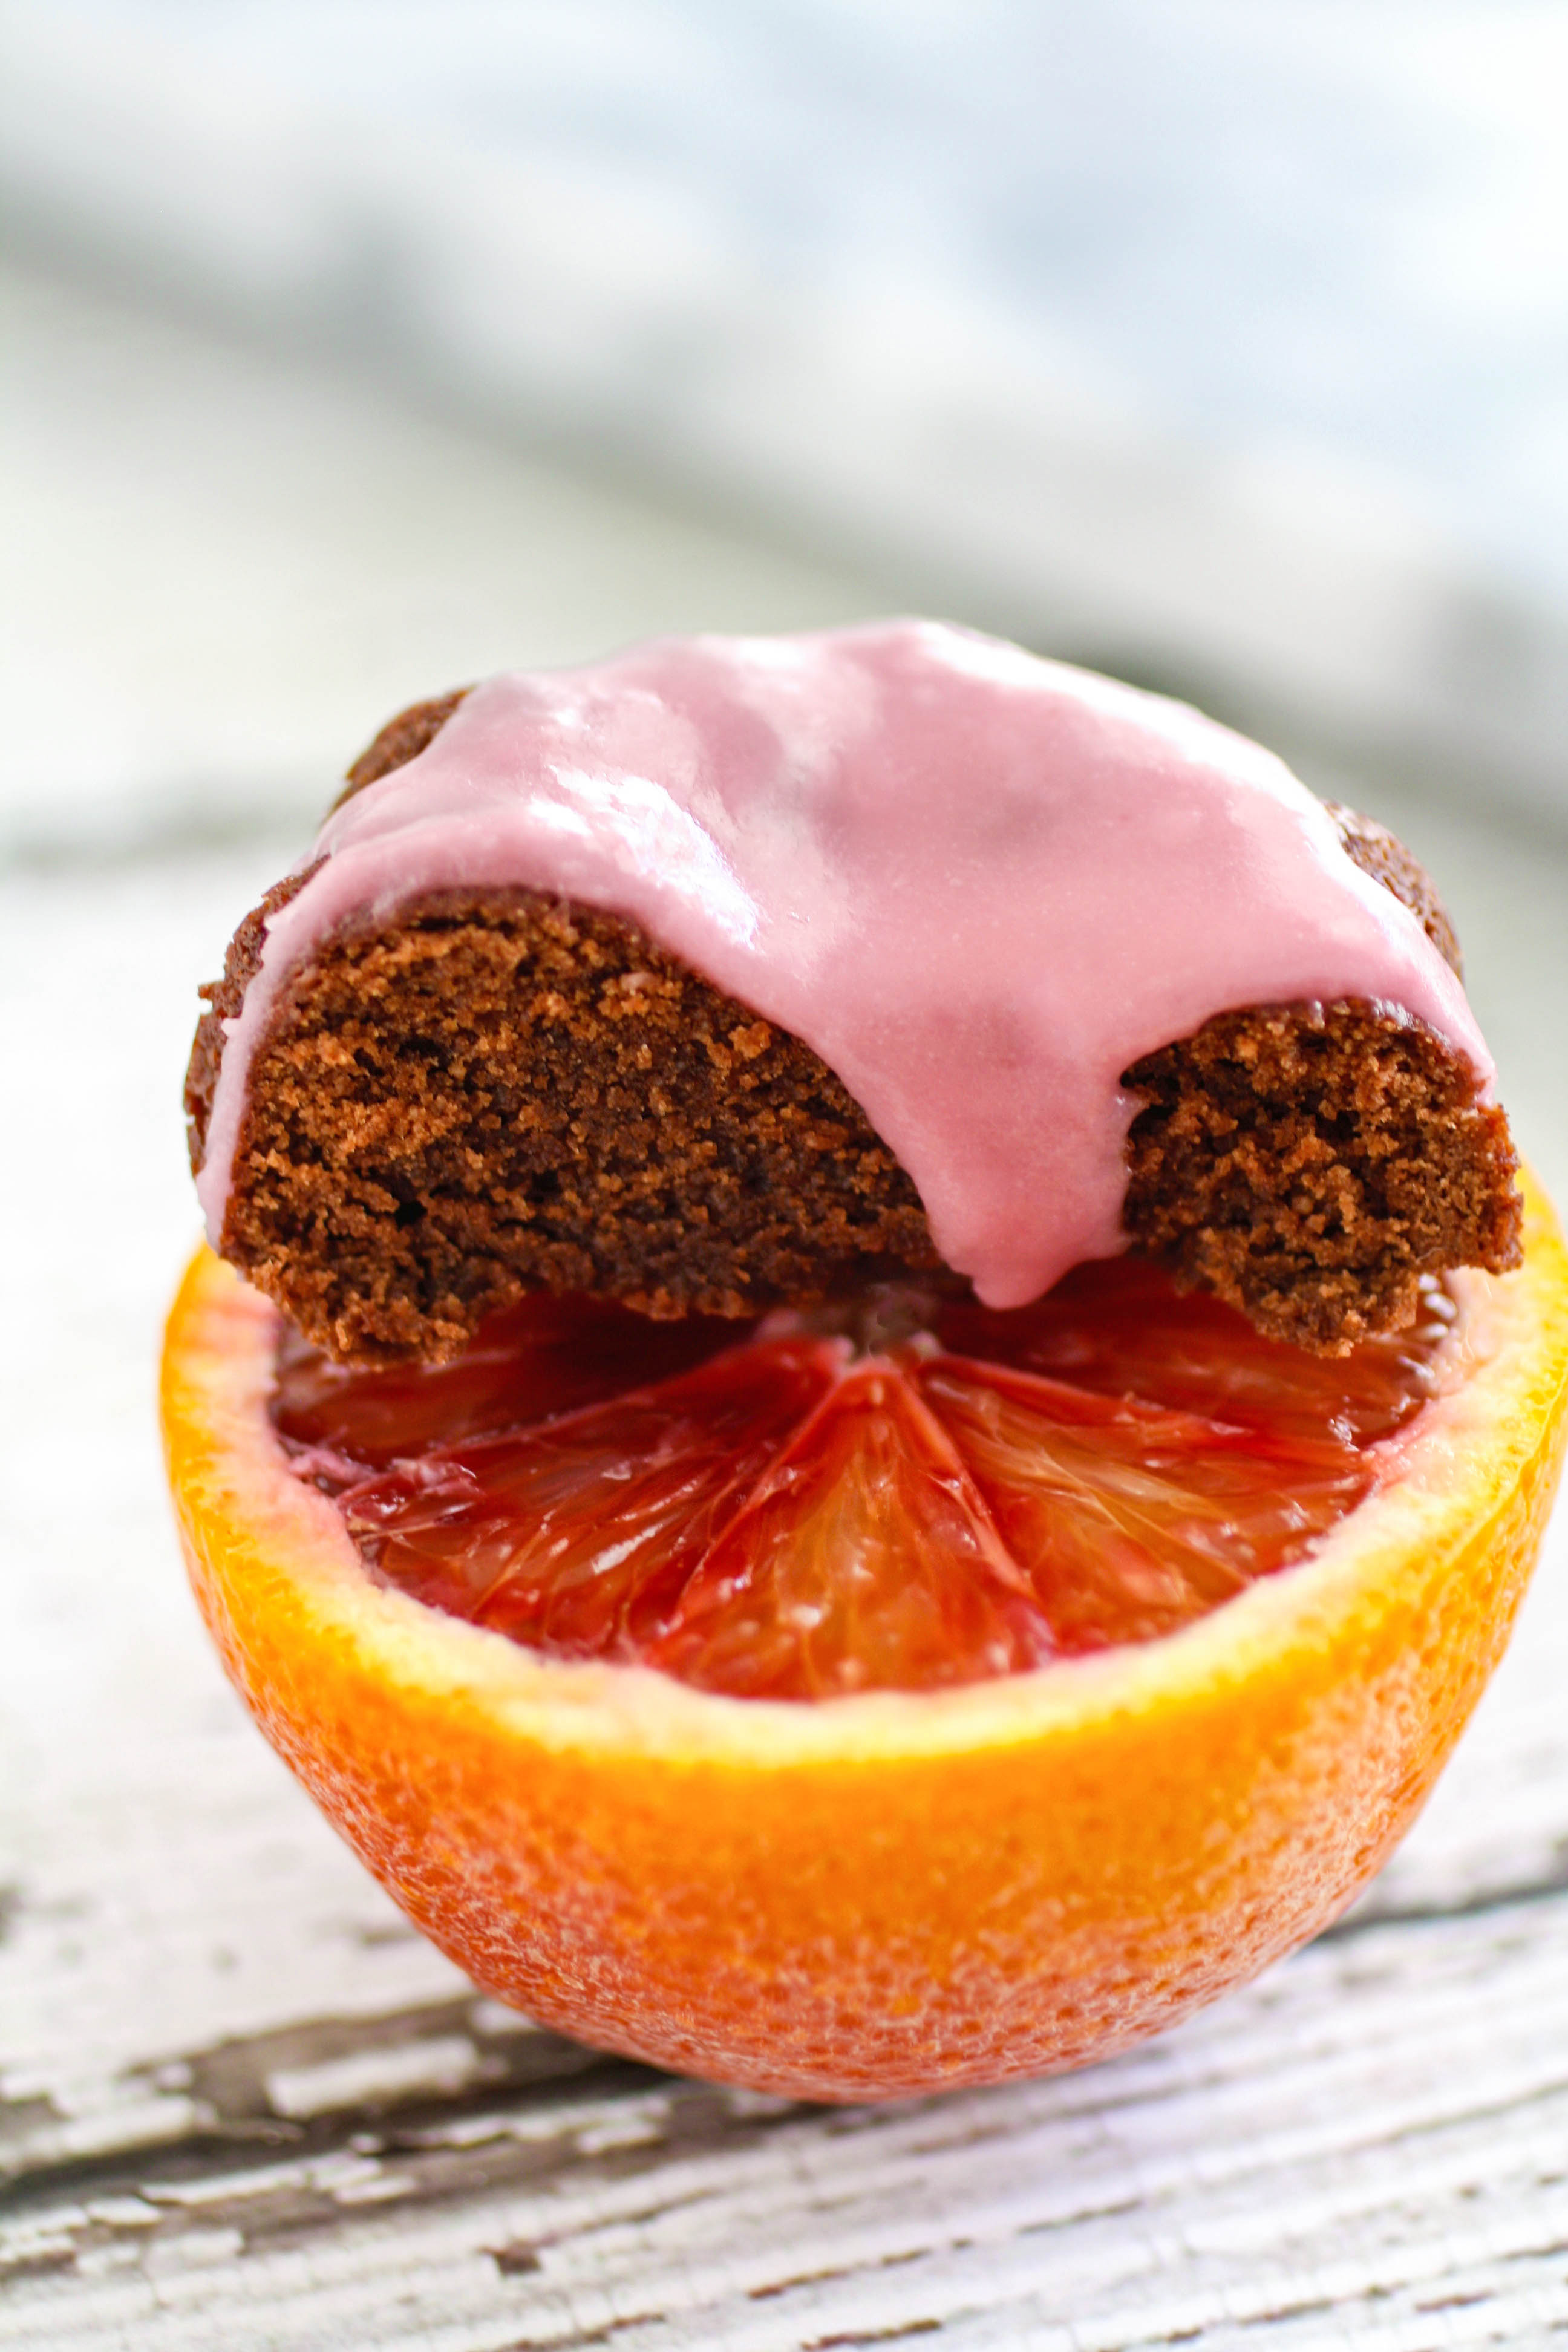 Best Chocolate Scented Flowers: Mini Blood Orange Scented Chocolate-Ricotta Cakes